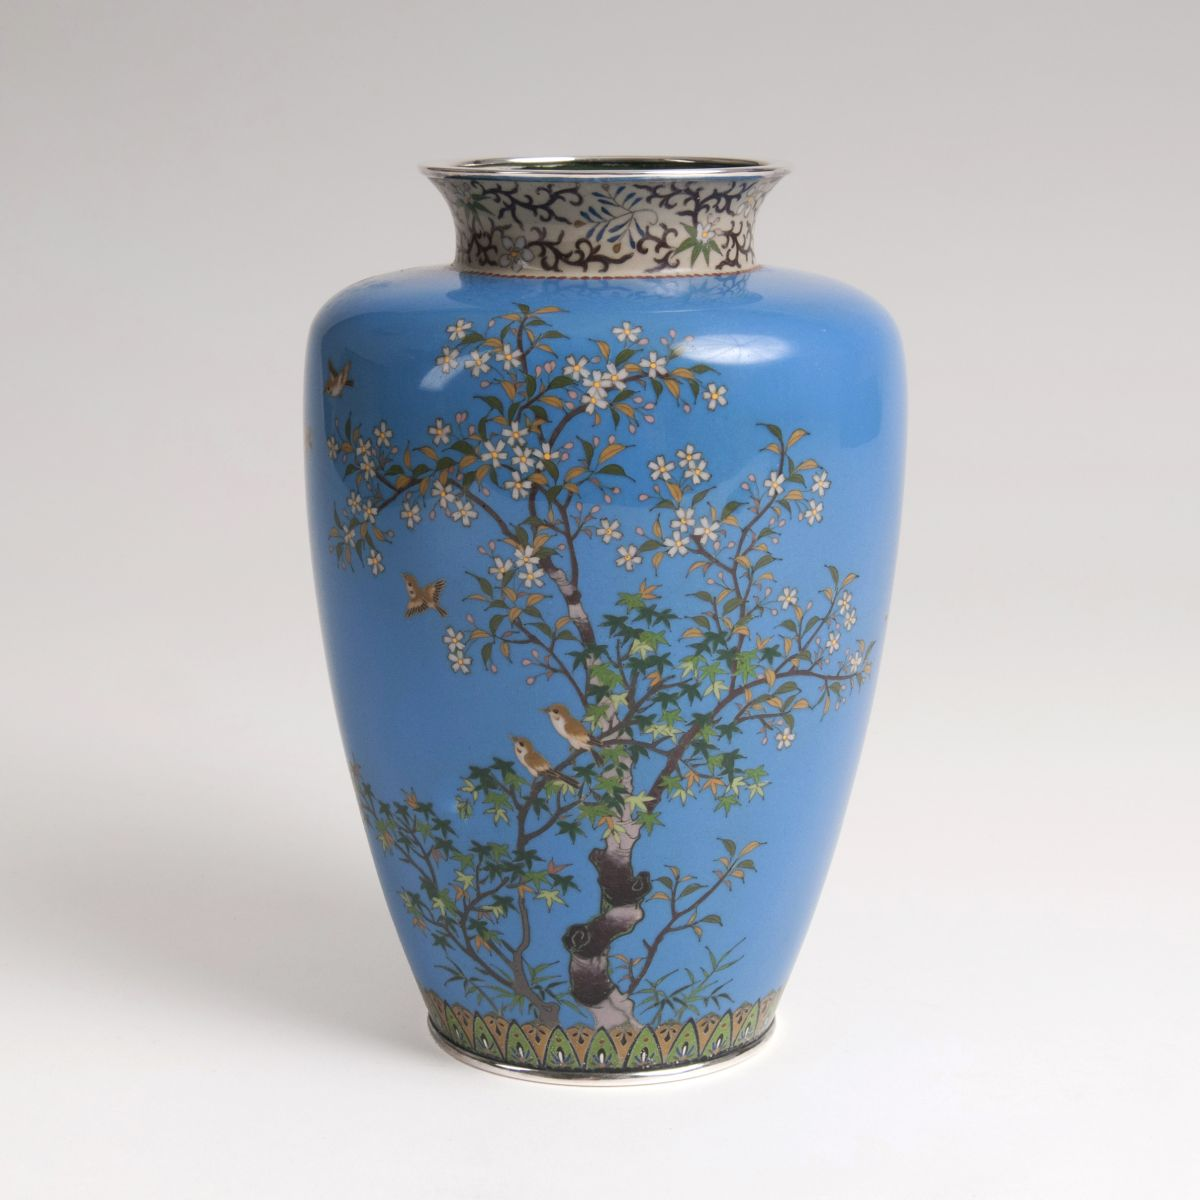 A Cloisonné vase with flowers and birds